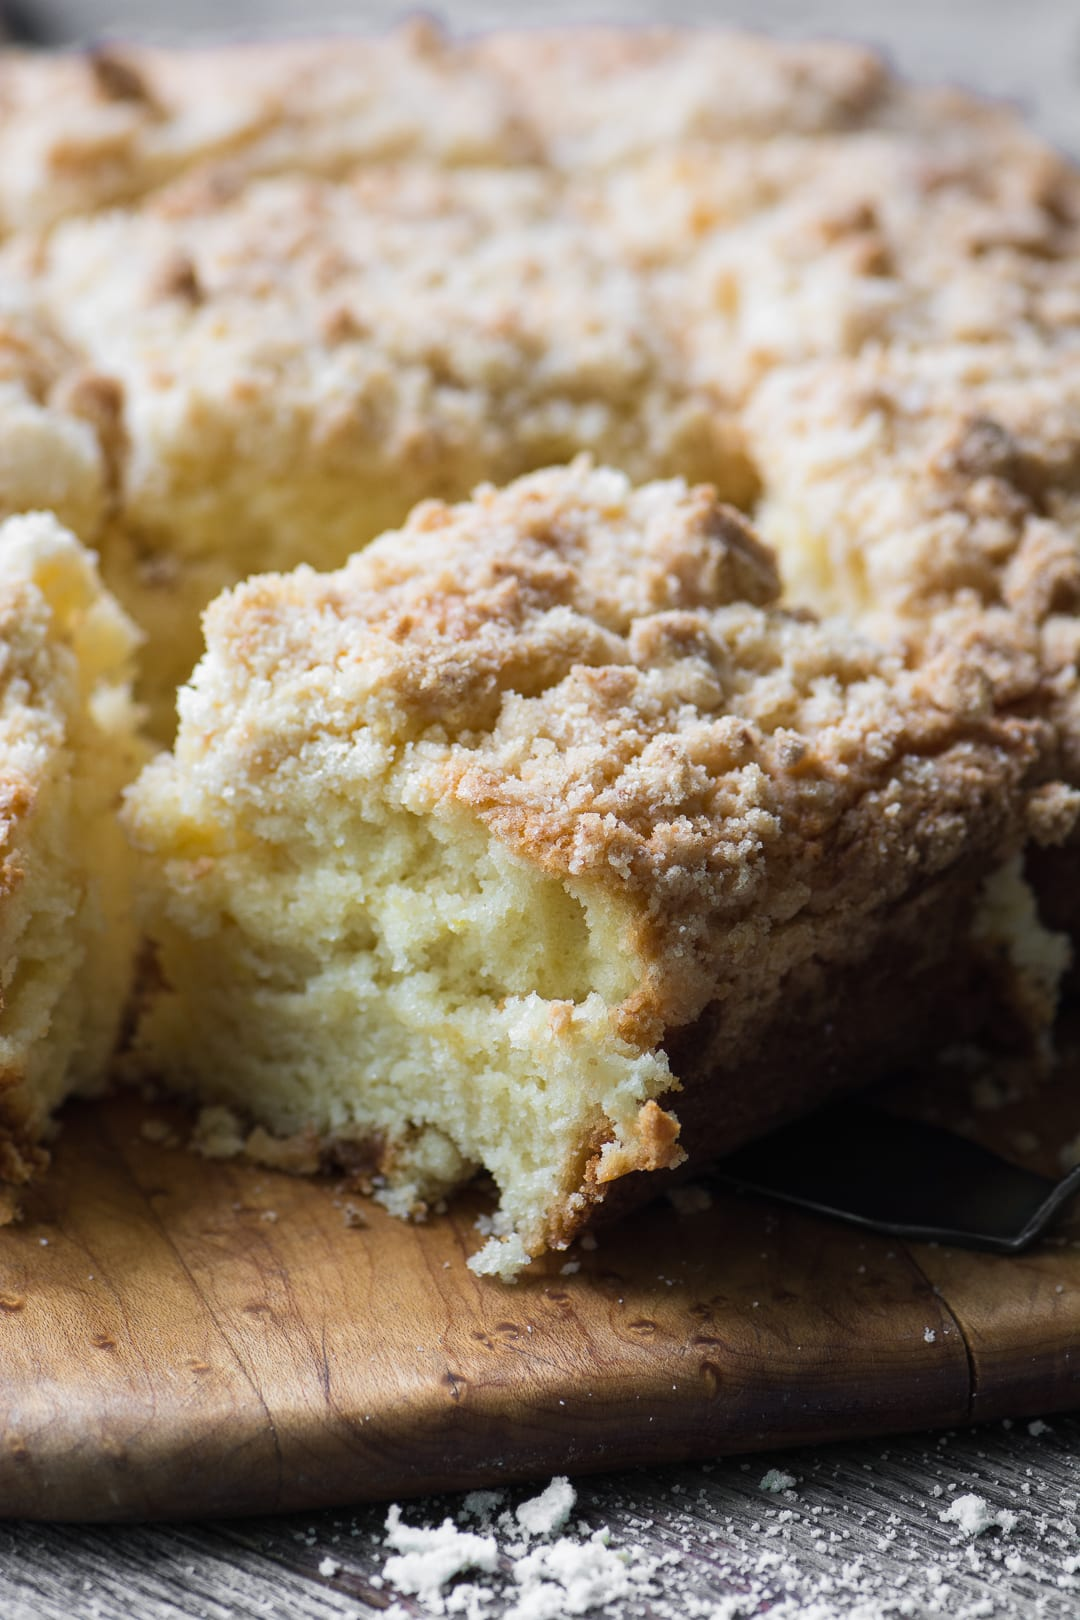 Lemon Sugar Crumb Cake is a mile high crumb cake with a delicate fresh lemon flavor, it's made with my special lemon infused sugar ~ an easy technique for punching up the citrus flavor in your favorite recipes!